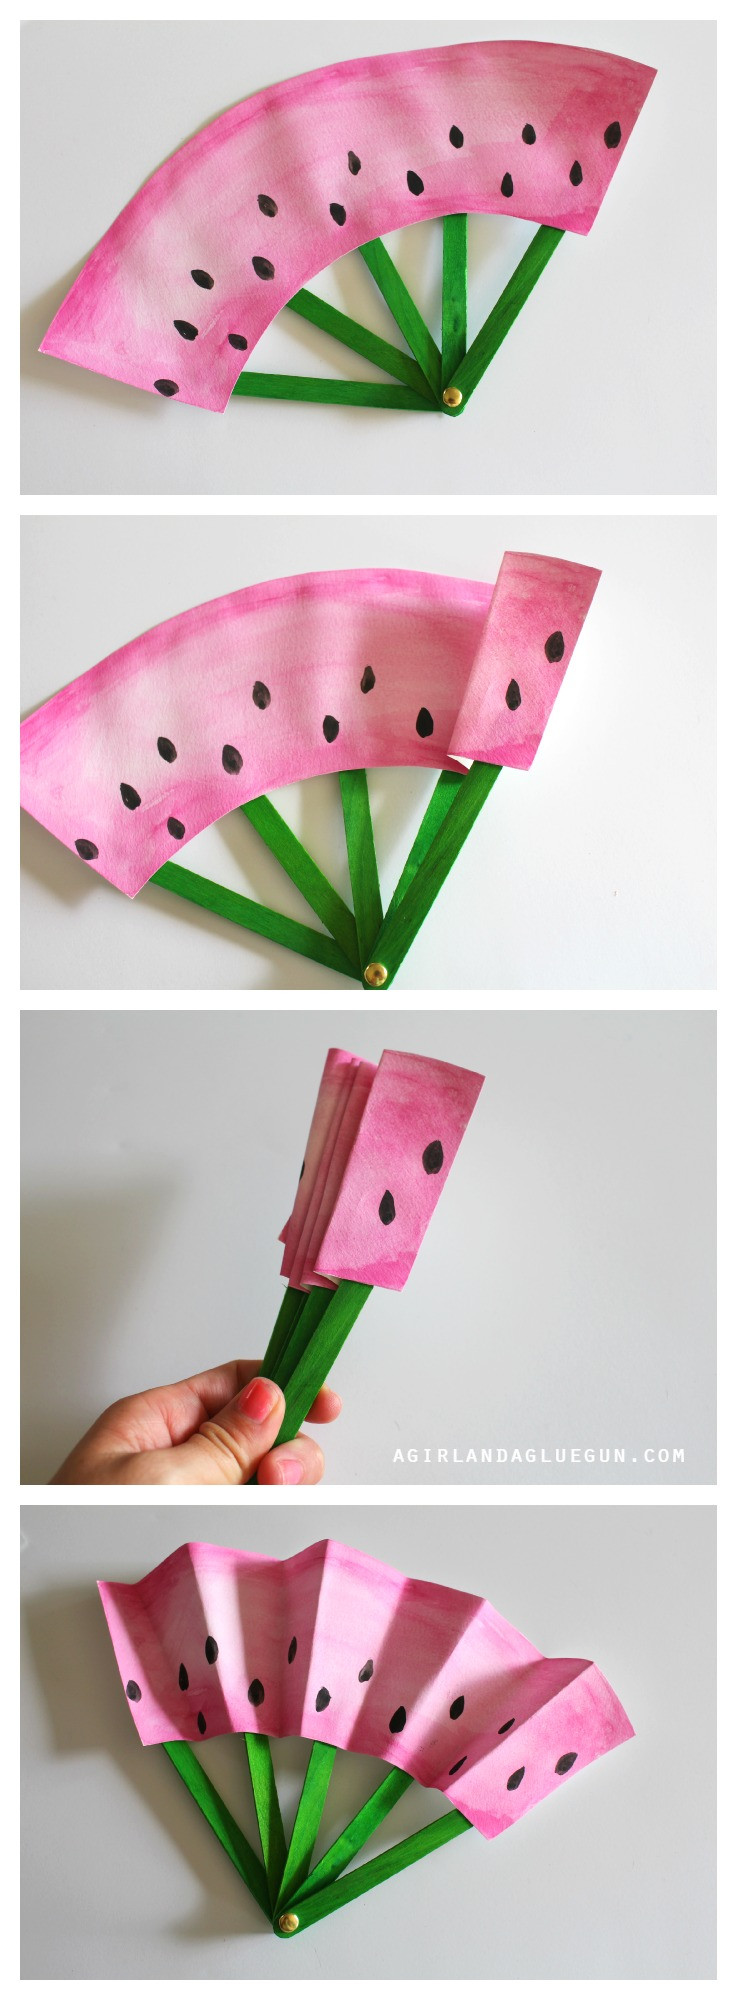 Best ideas about Arts And Crafts For Kids Ideas . Save or Pin DIY Fruit Fans Kids Craft The Idea Room Now.